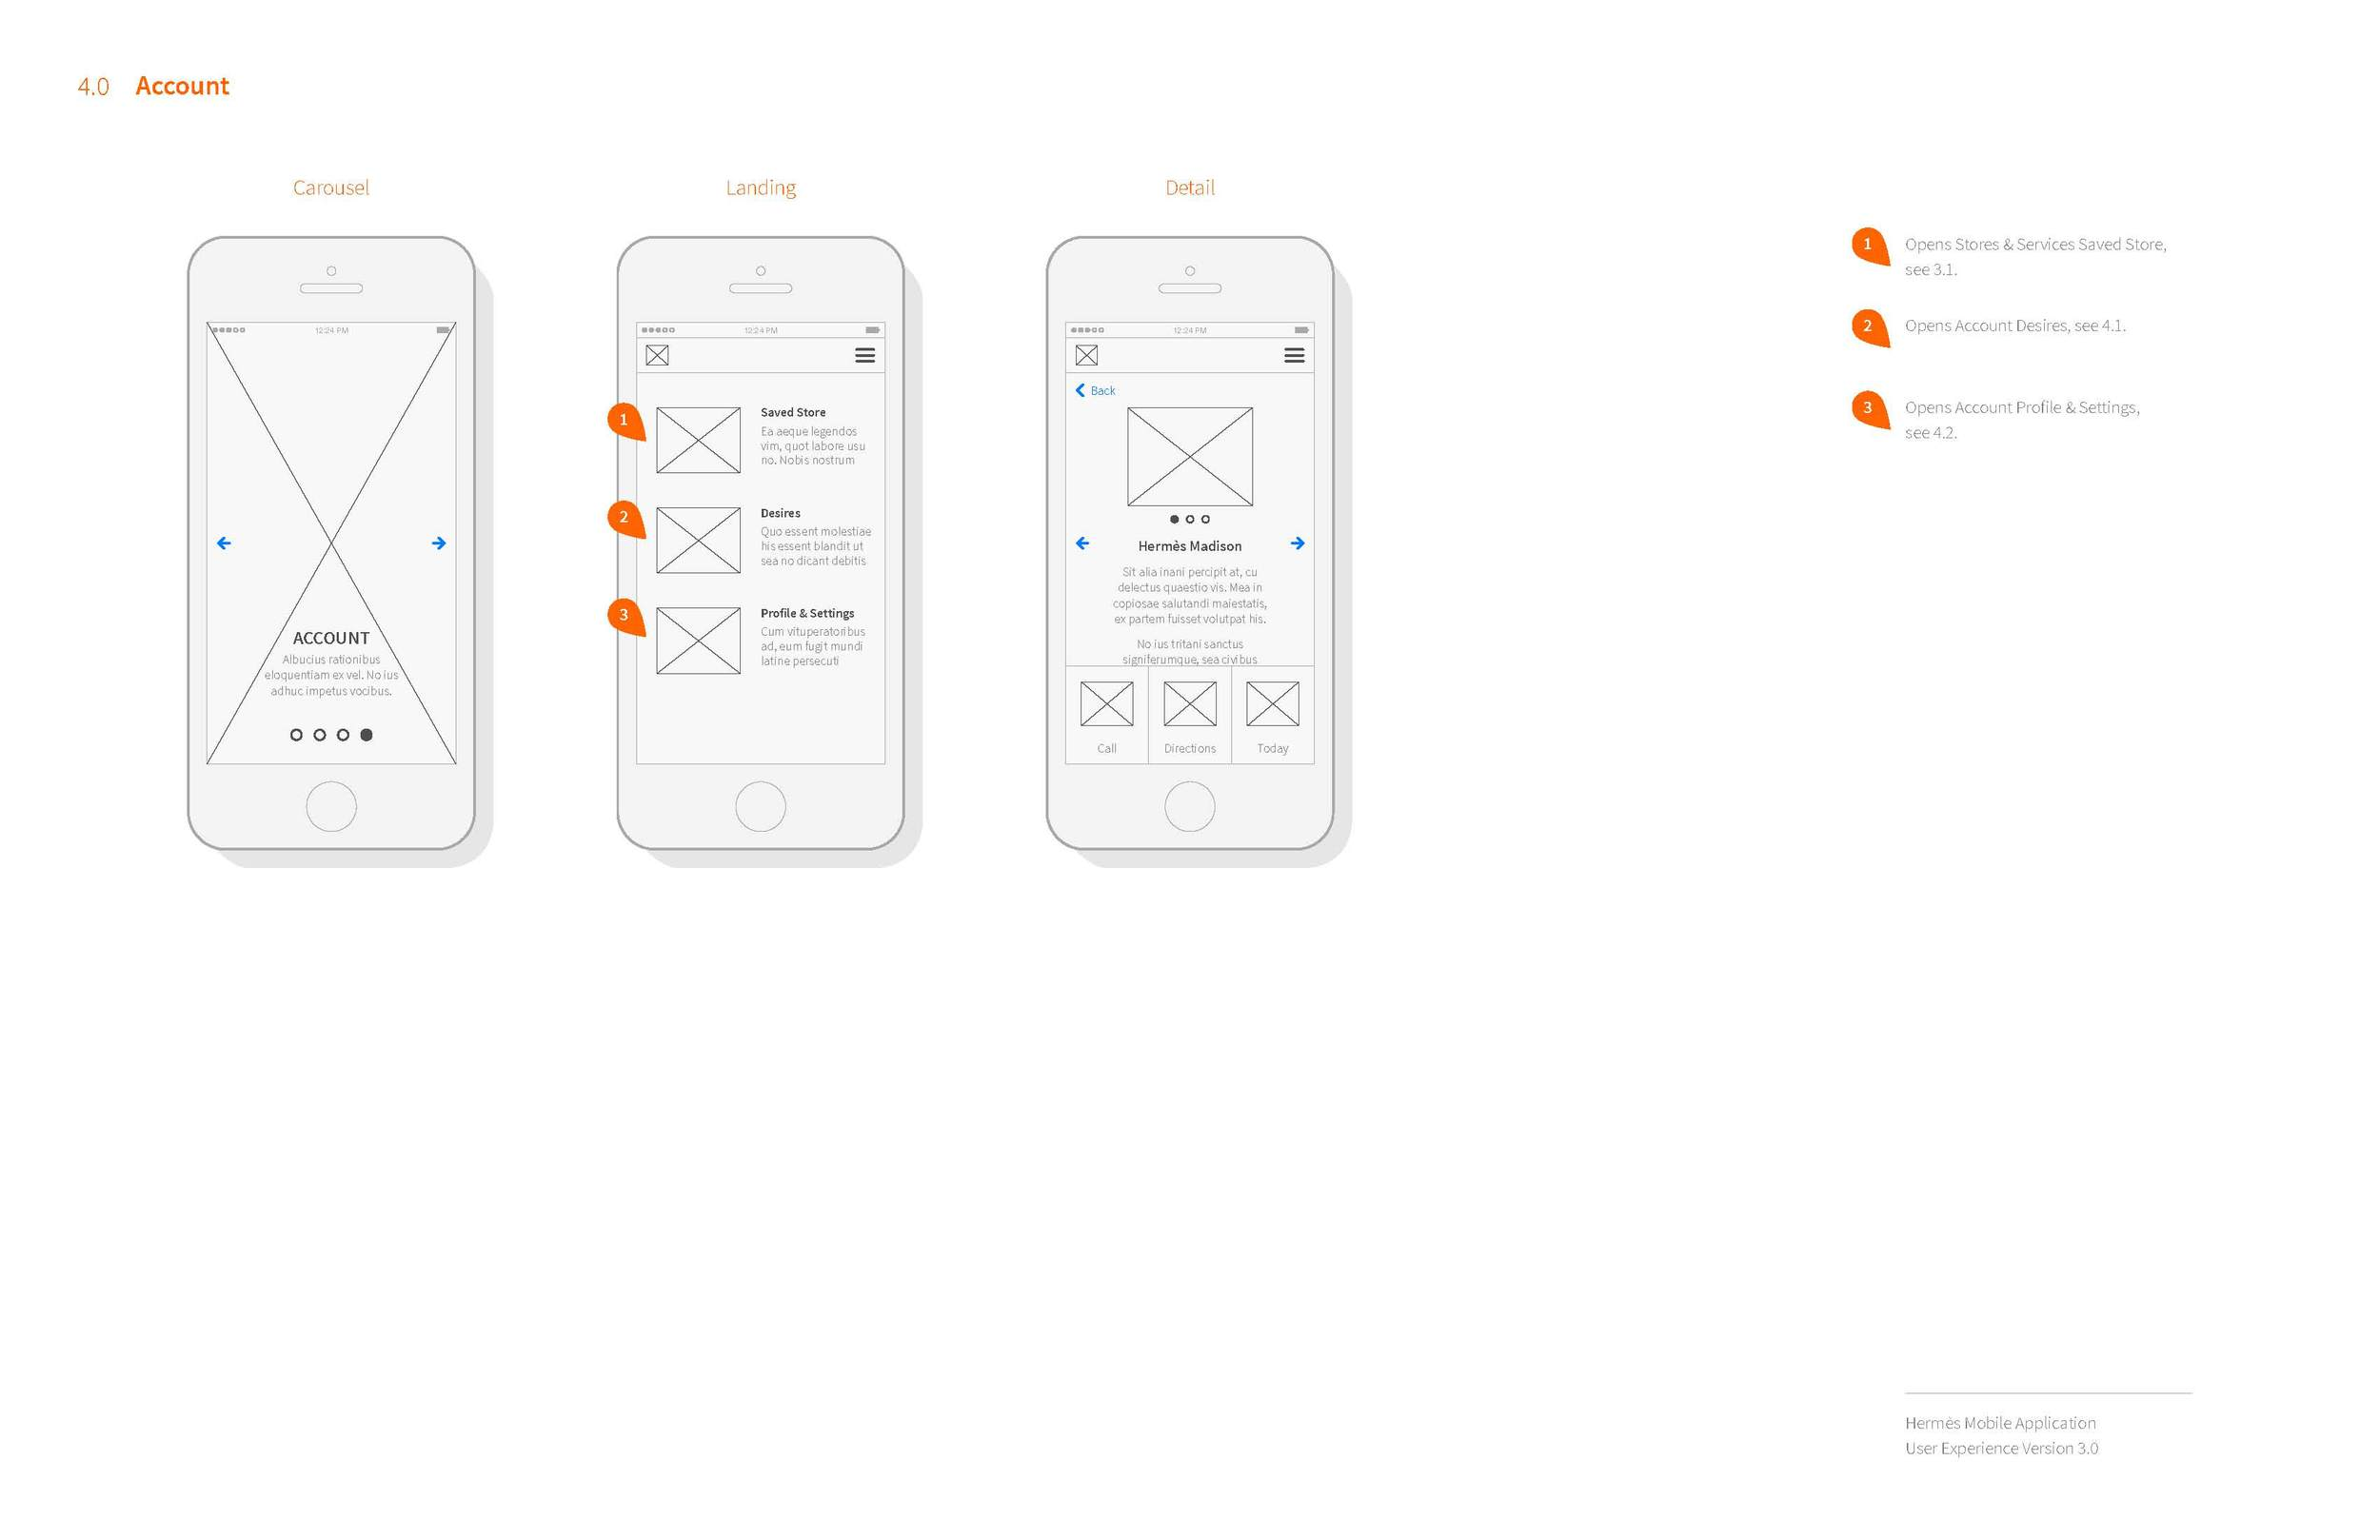 hermes-caraousel-wireframes_Page_14.jpg